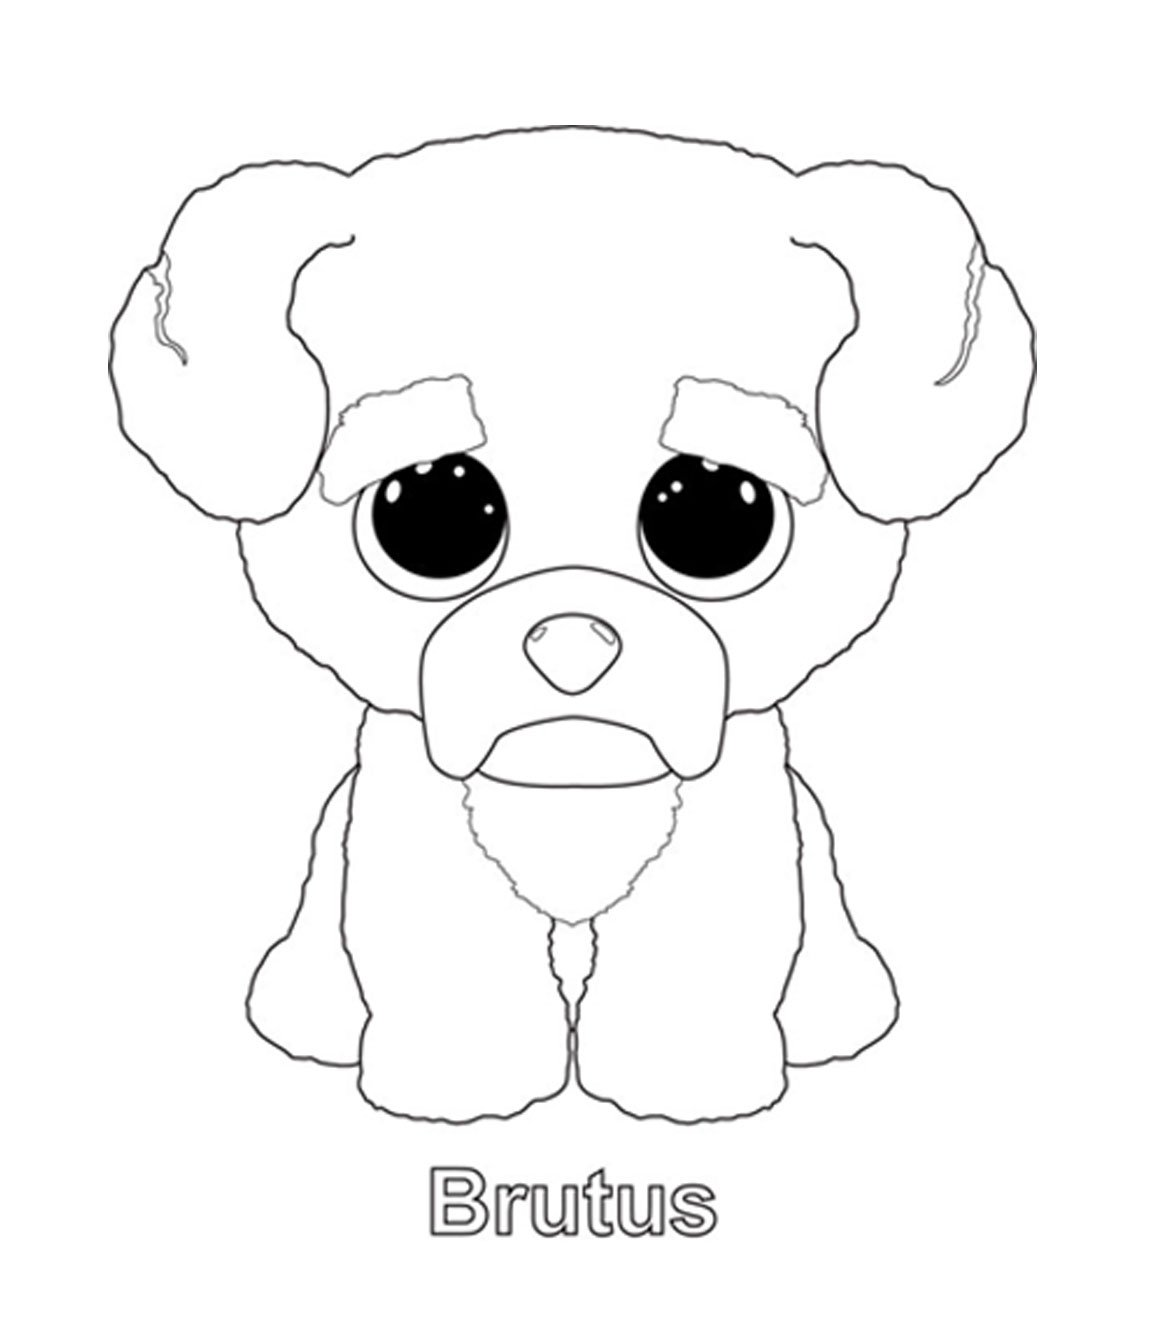 ty inc on twitter we have beanie boo coloringpages tweet us your masterpieces and we might. Black Bedroom Furniture Sets. Home Design Ideas